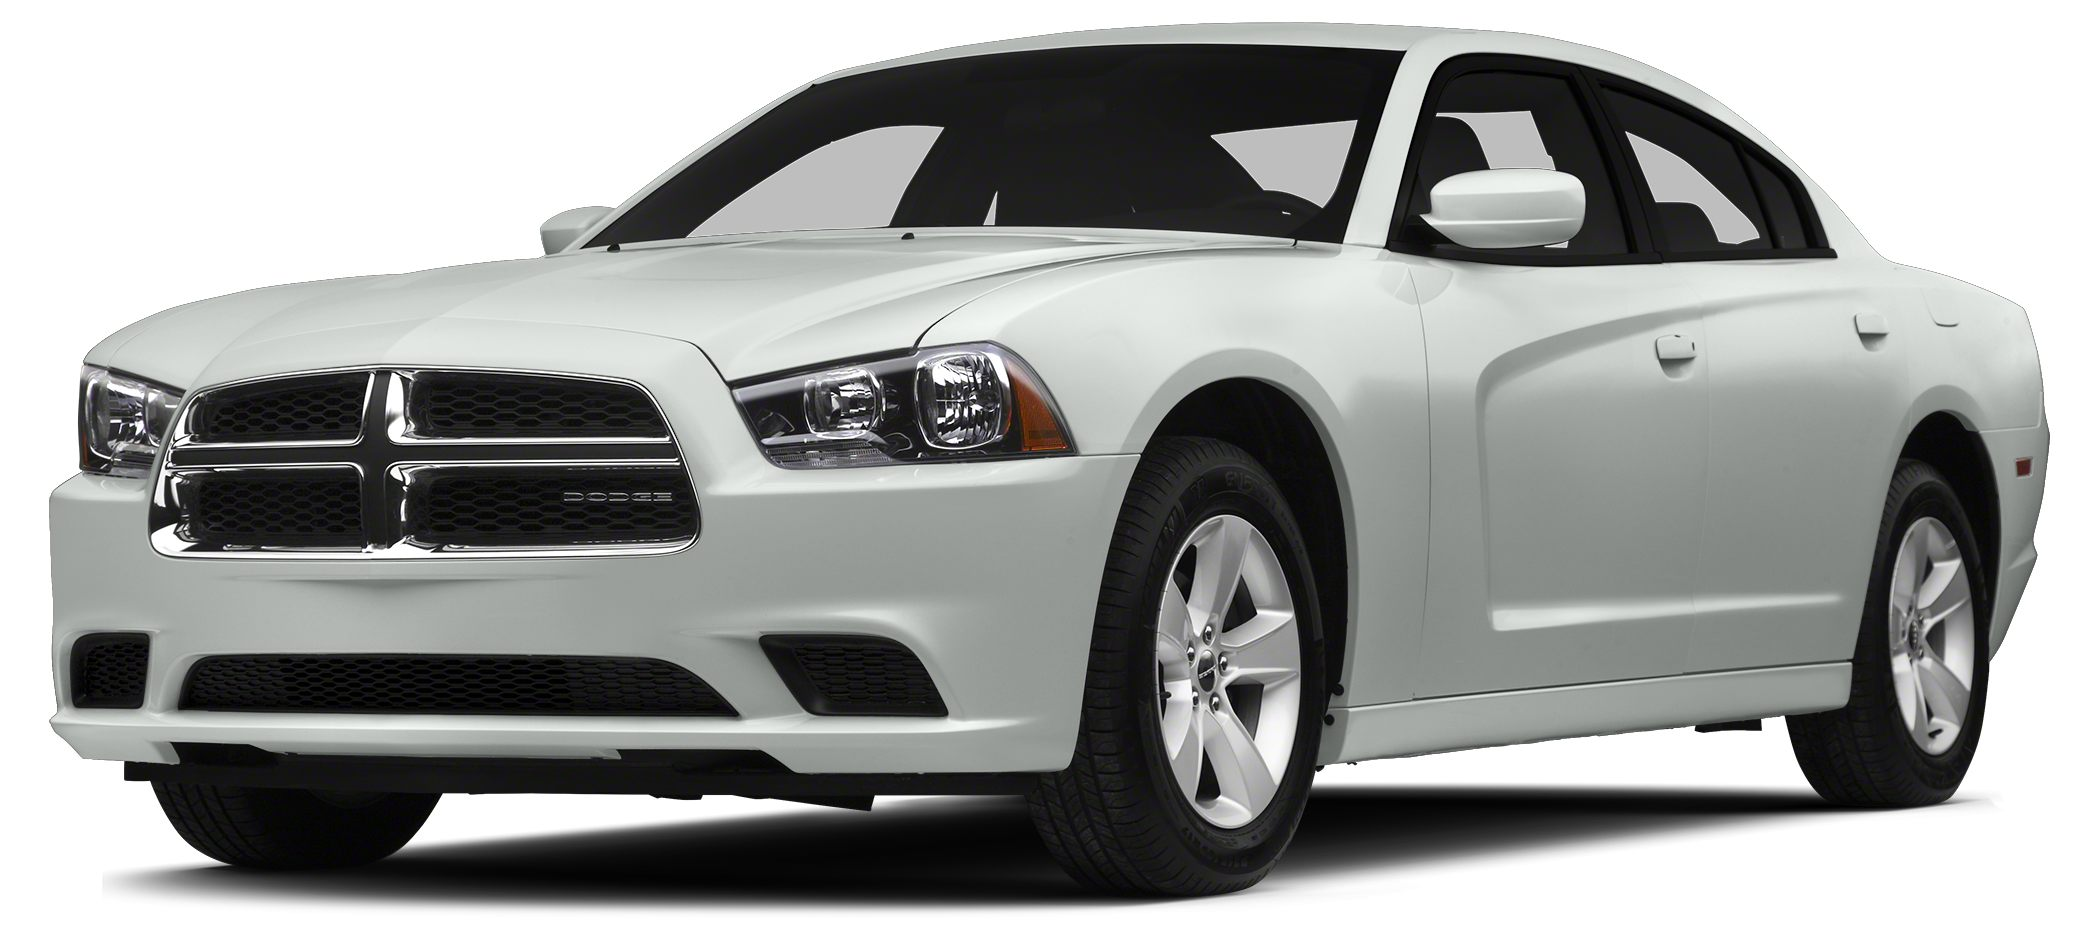 2014 Dodge Charger SE CLEAN CARFAX REPORT  Custom Charger GraphicsRear SpoilerMo